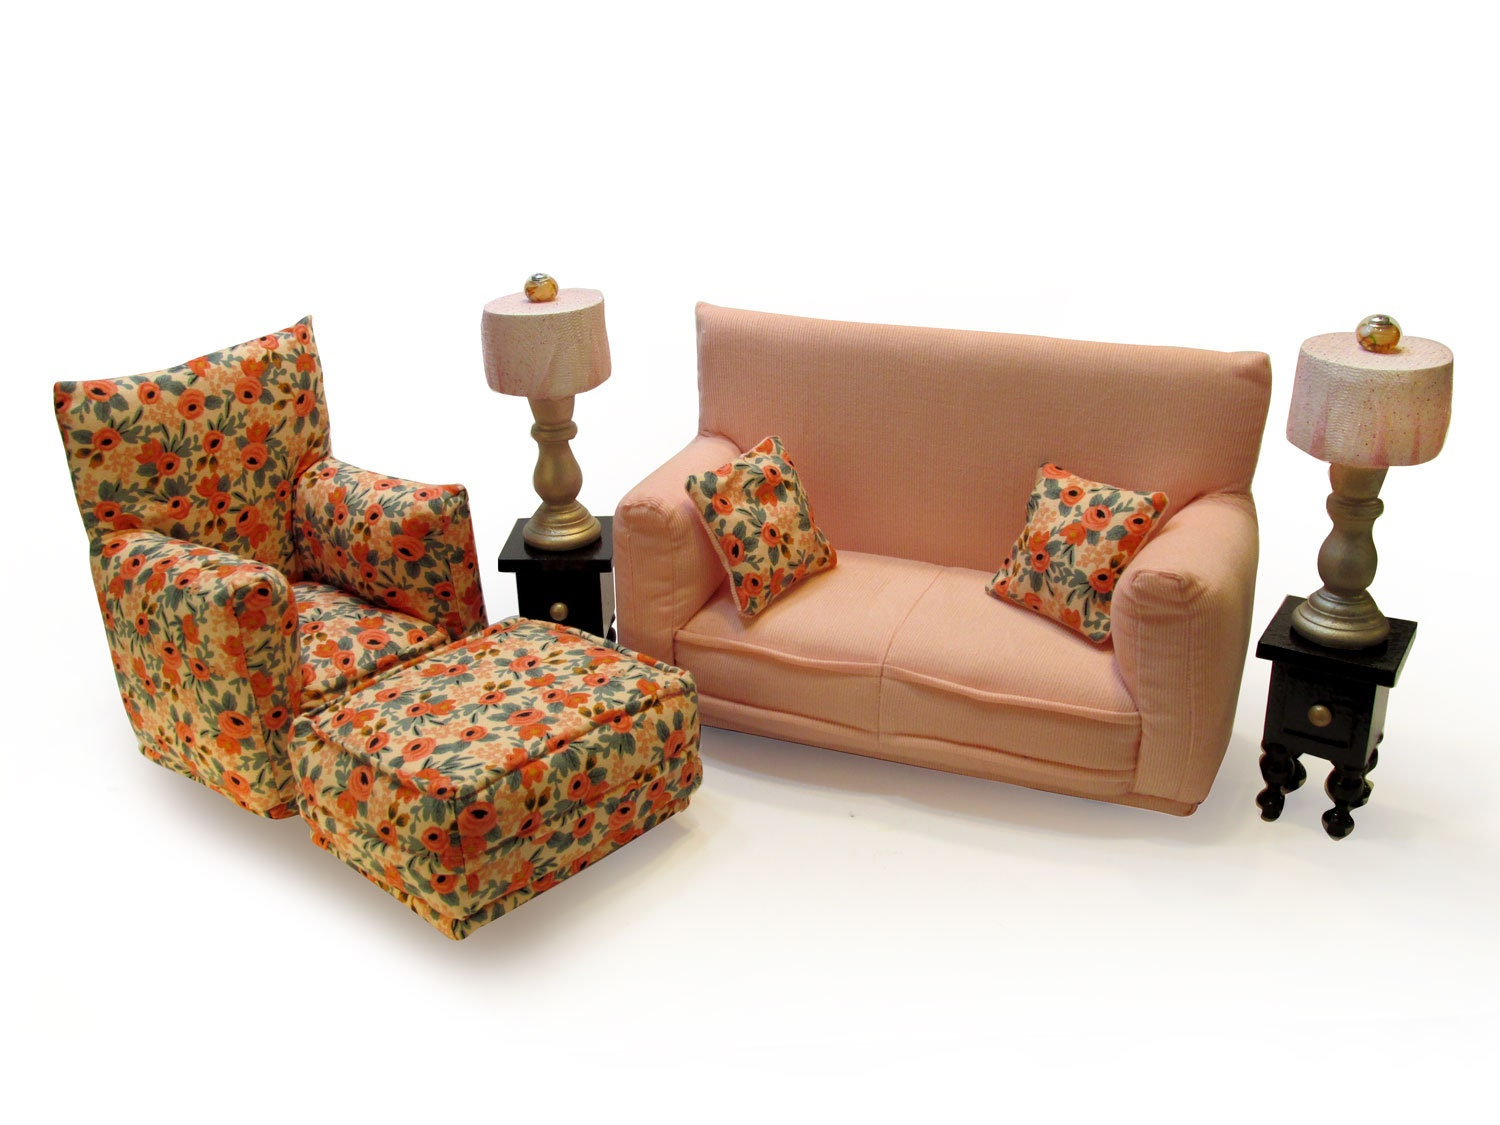 Barbie Doll Living Room Furniture 9-PC Play Set-1:6 scale ...